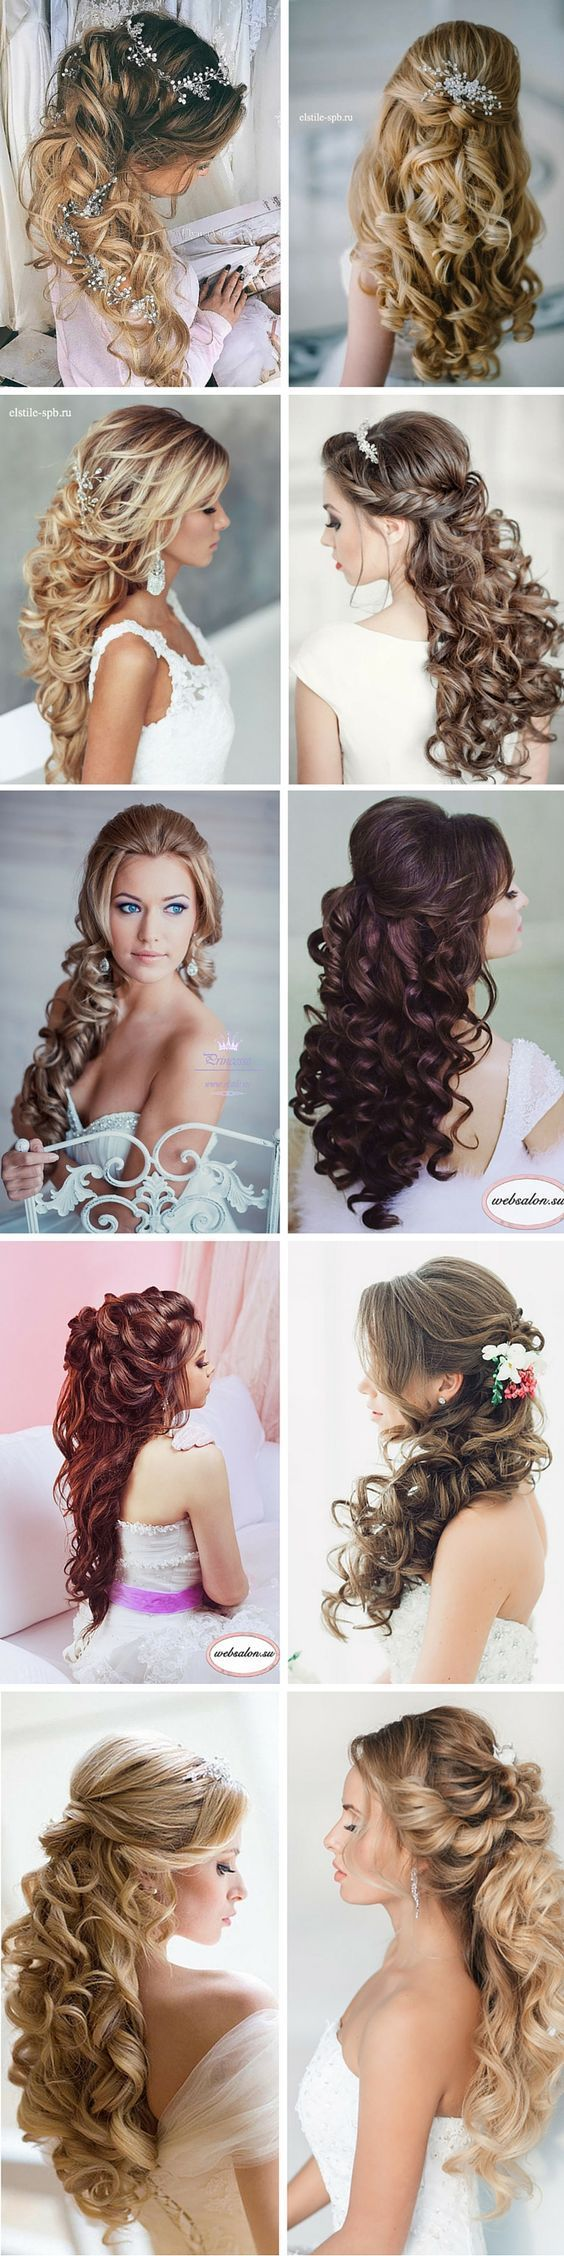 best 25+ hair jewelry for braids ideas on pinterest | simple hair